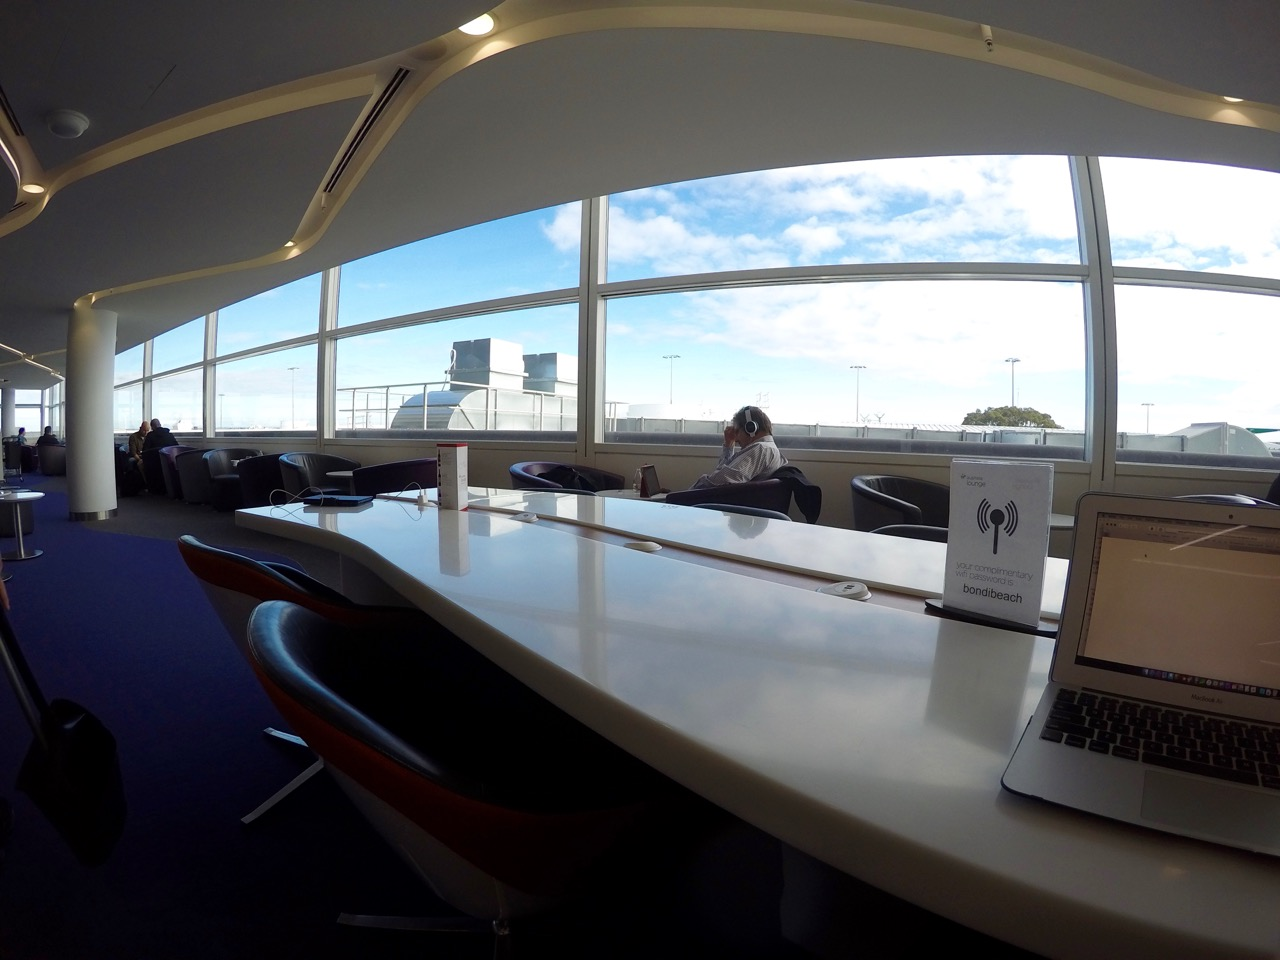 Sydney Virgin Australia Lounge | Point Hacks